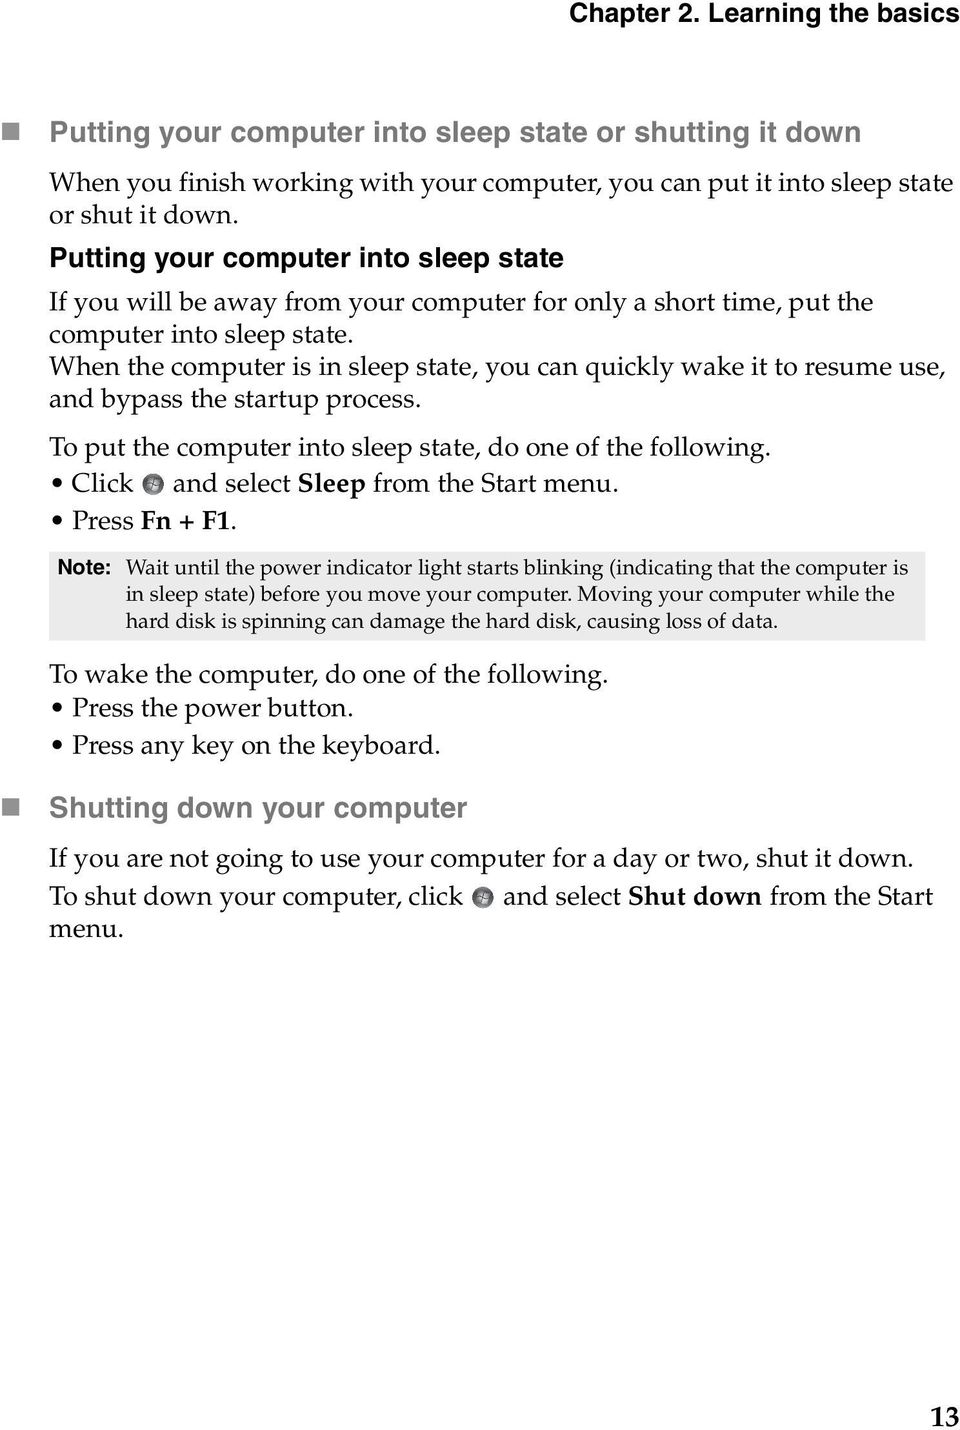 When the computer is in sleep state, you can quickly wake it to resume use, and bypass the startup process. To put the computer into sleep state, do one of the following.